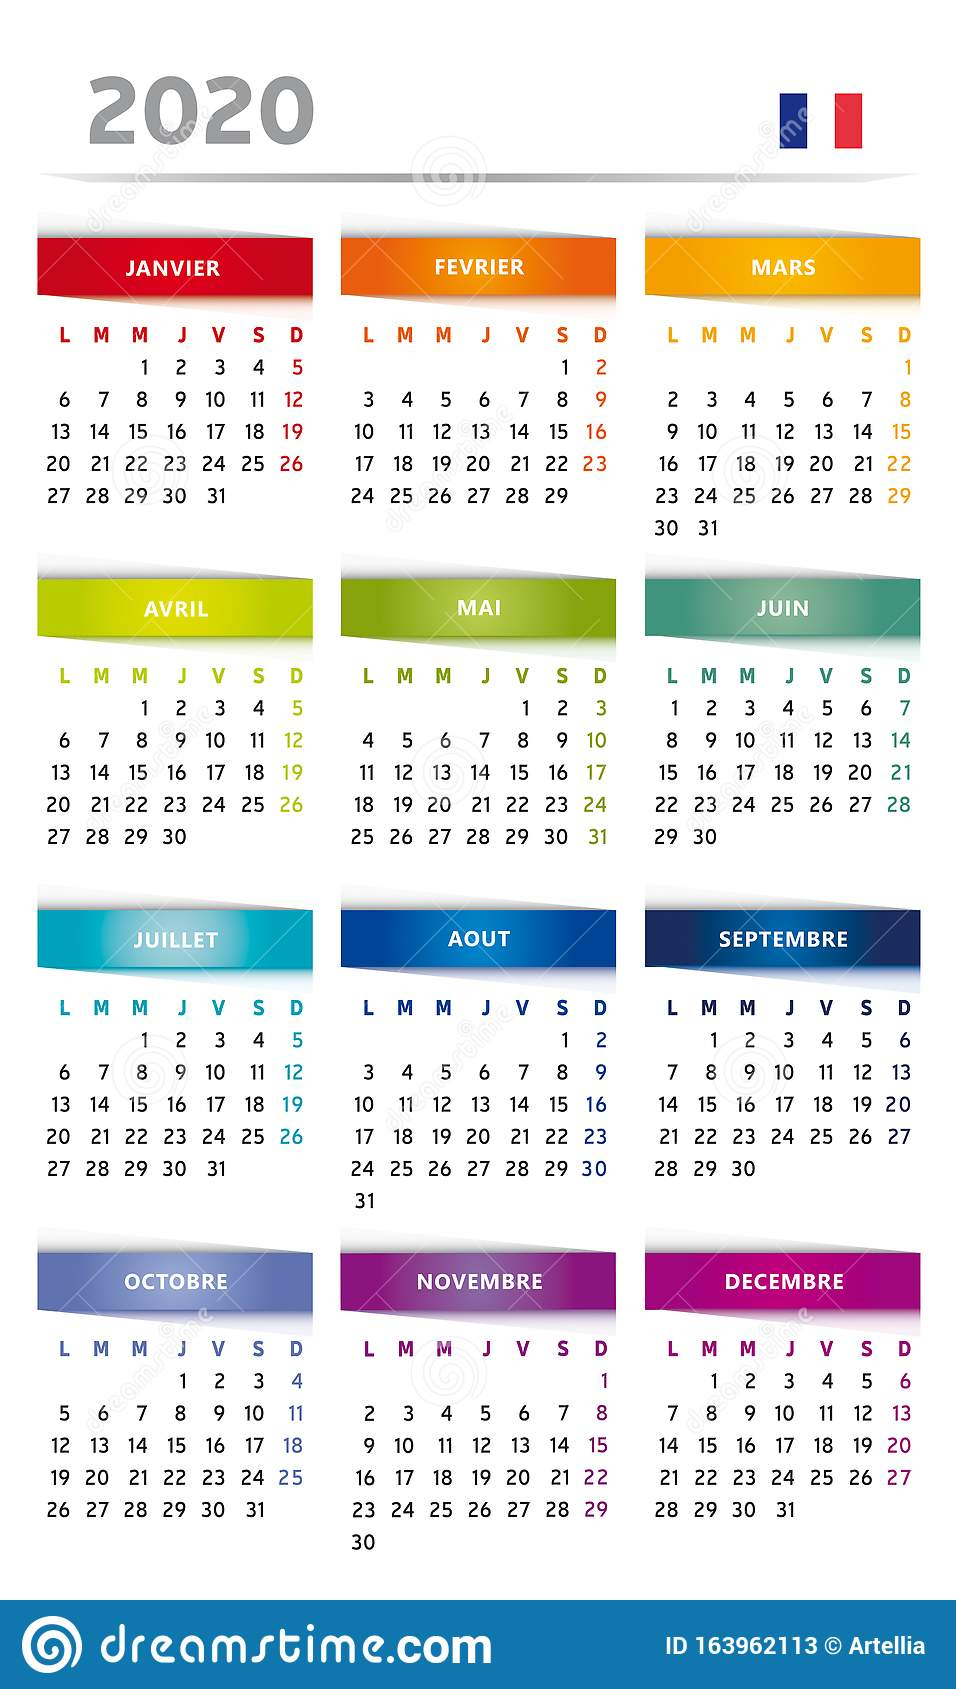 2020 Calendar With Boxes In Rainbow Colors 4 Trimesters - 3